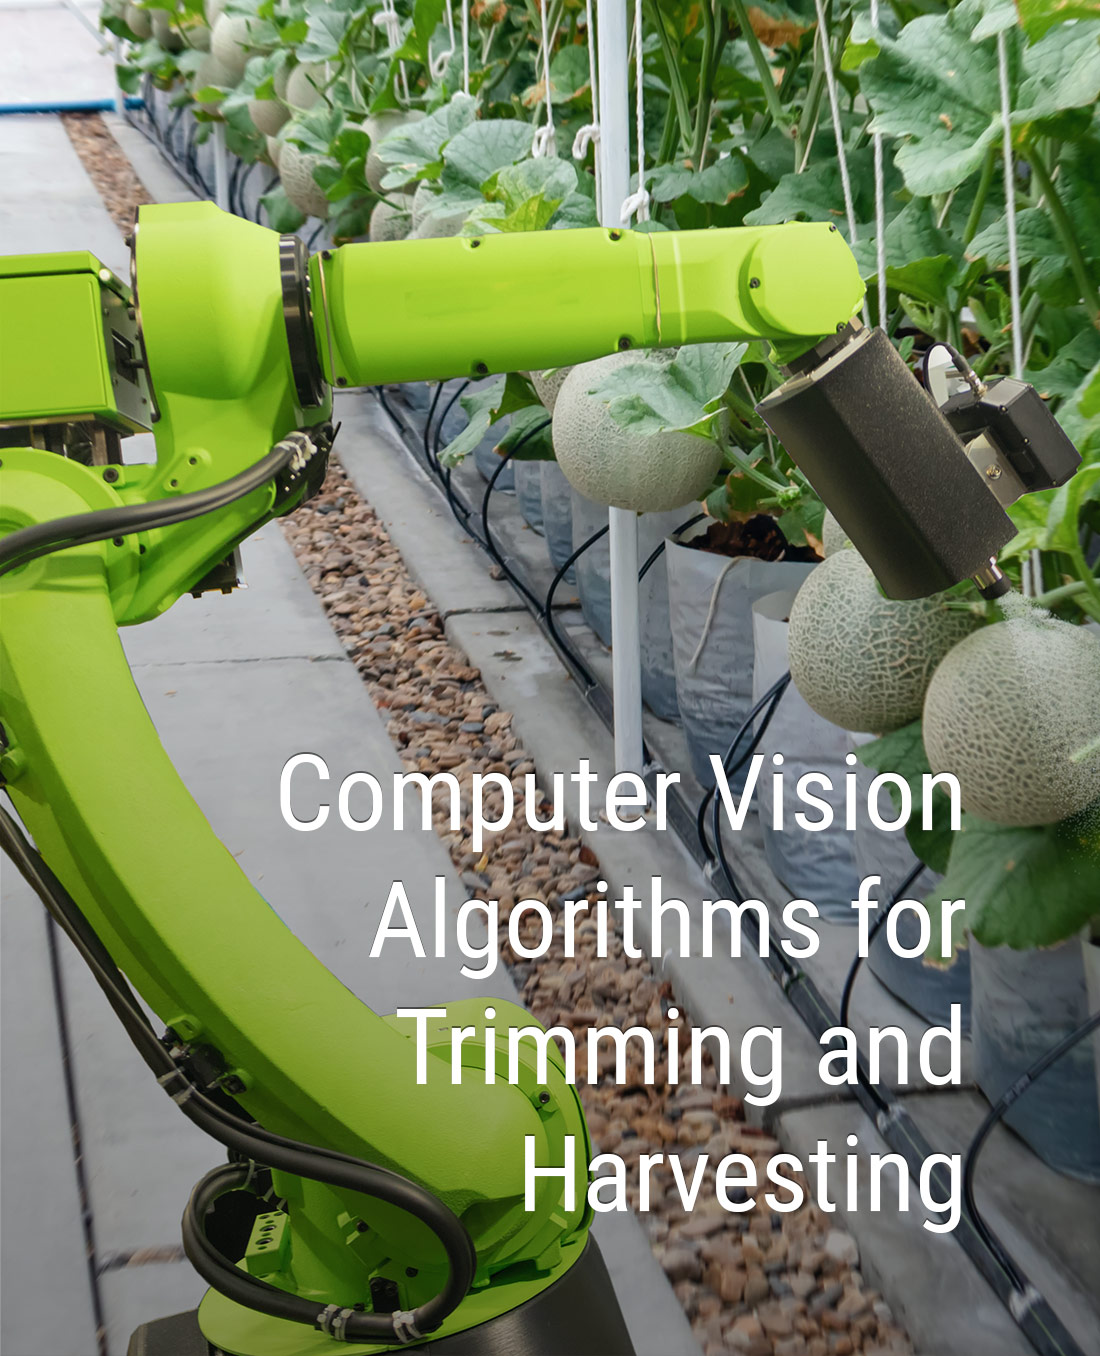 Computer Vision Algorithms for Trimming and Harvesting